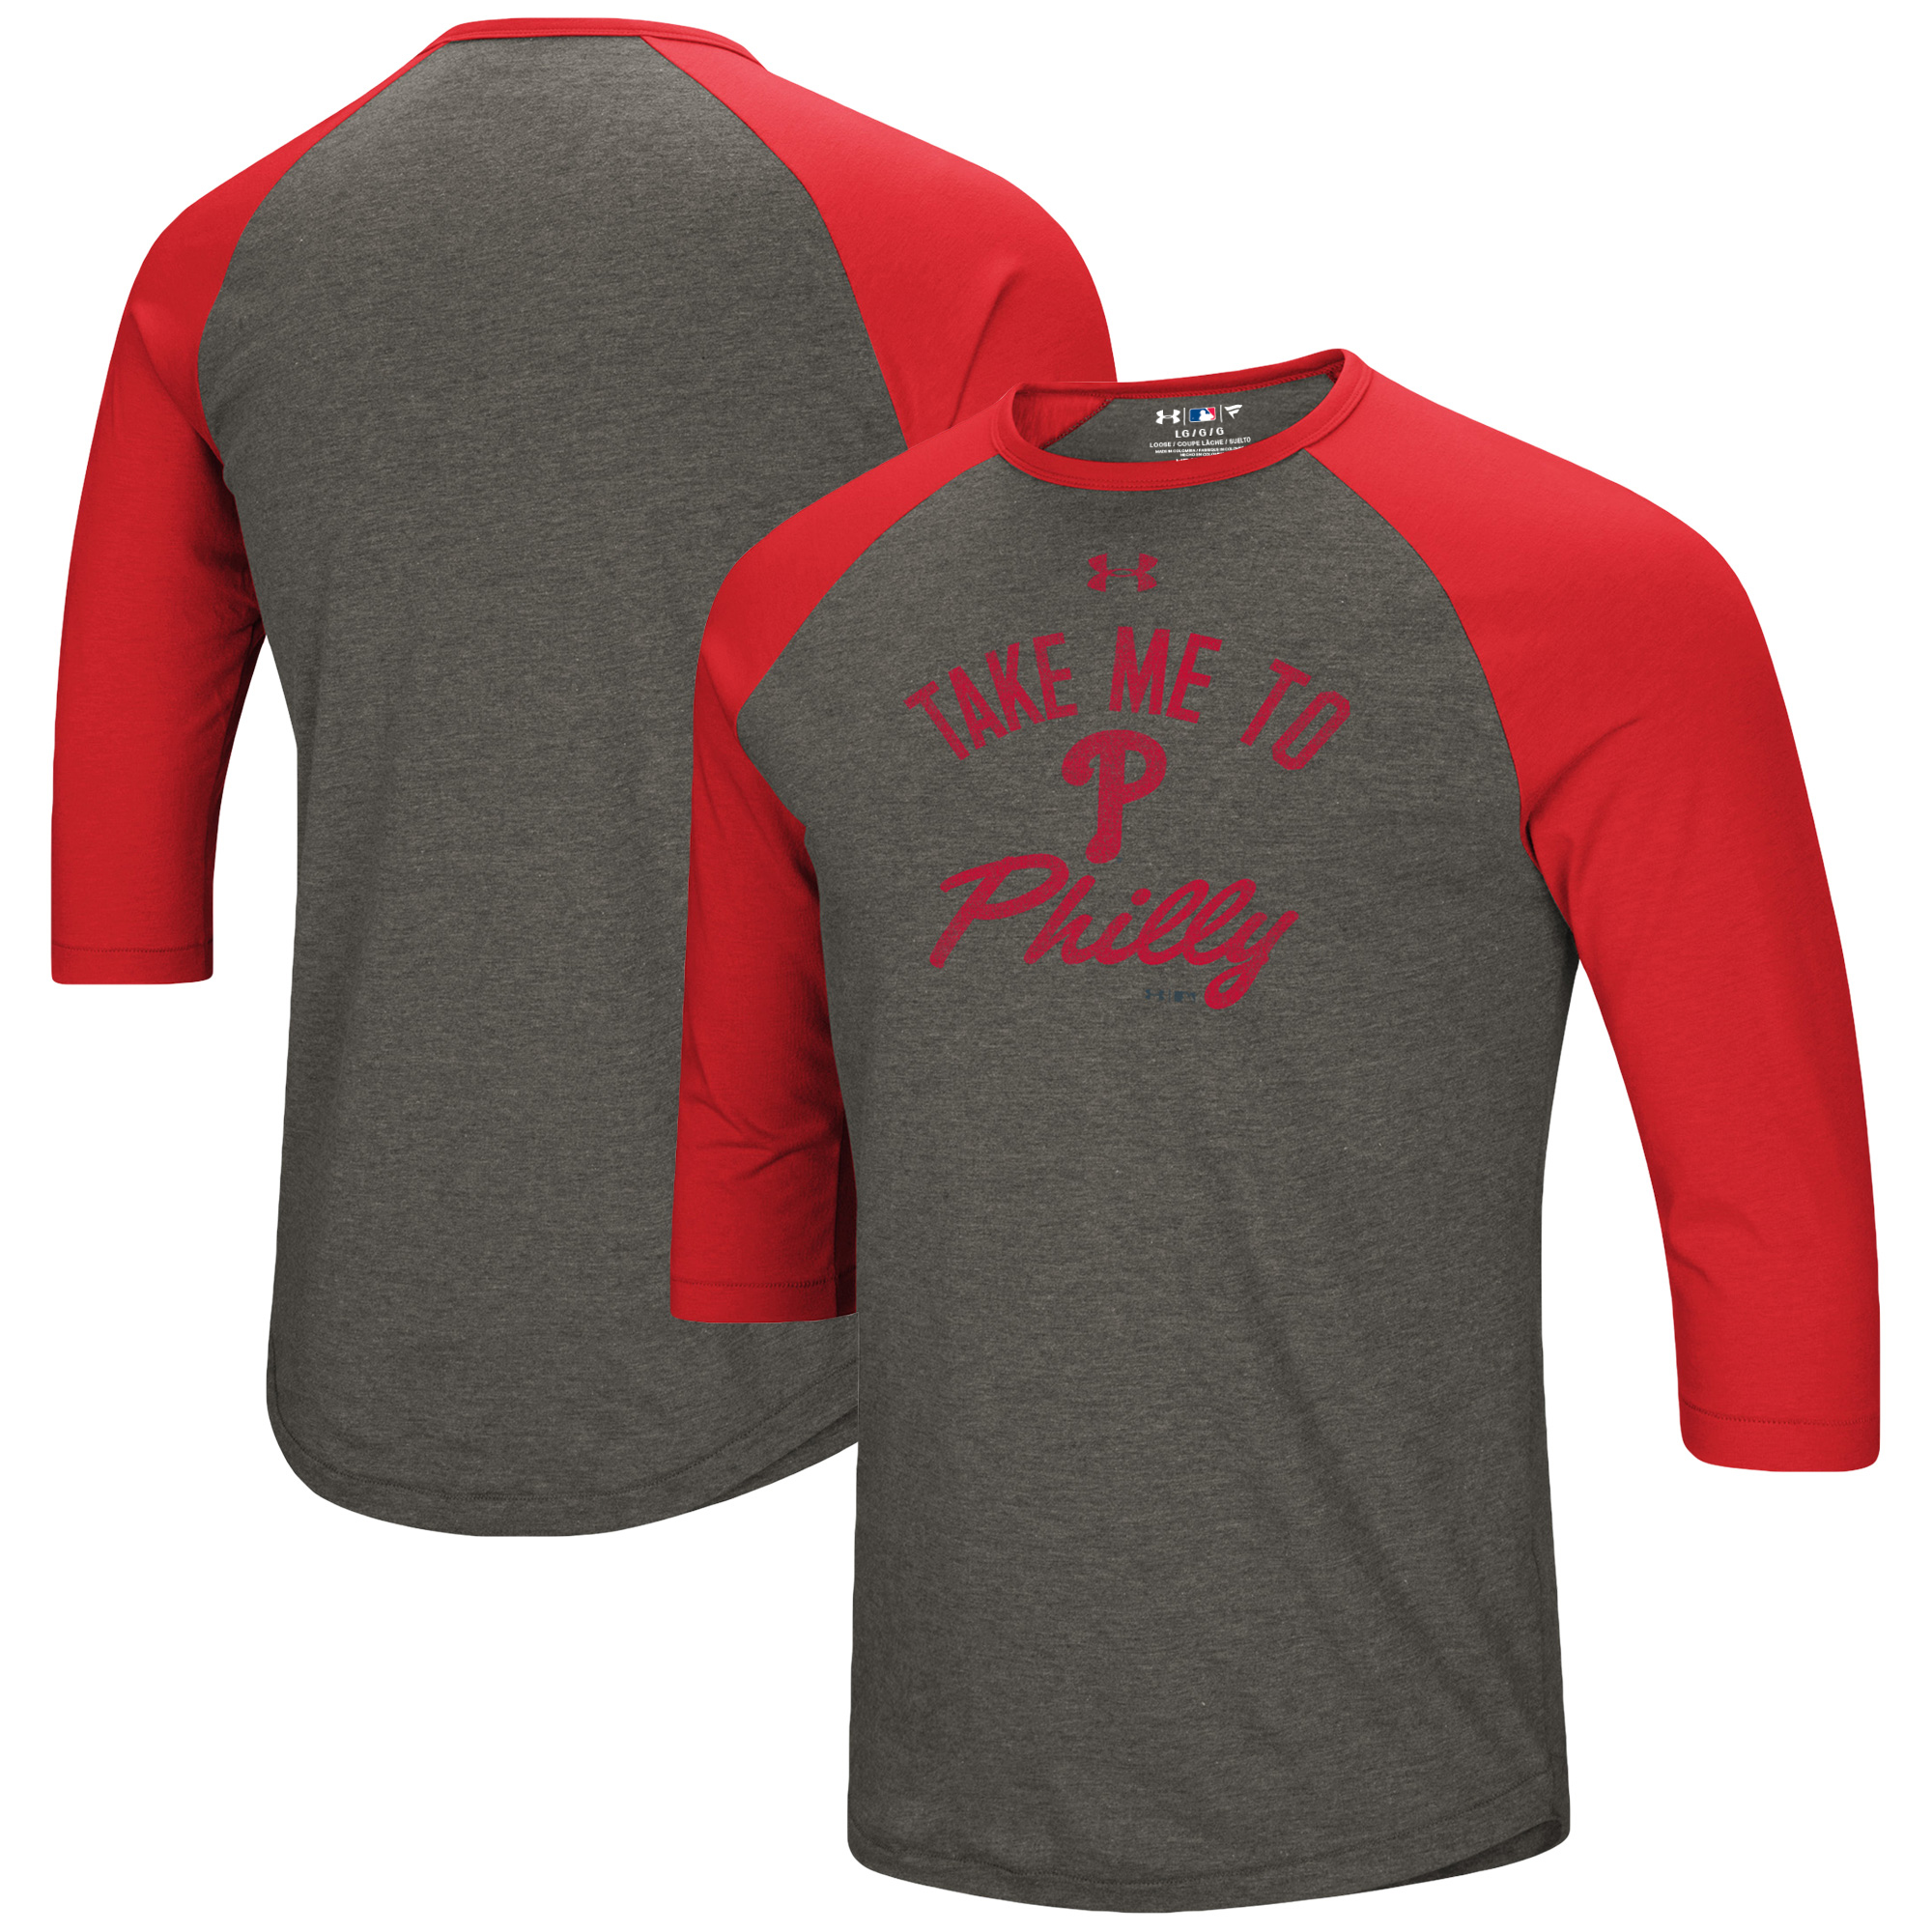 Philadelphia Phillies Under Armour Heritage Performance Tri-Blend Raglan 3/4-Sleeve T-Shirt - Heathered Gray/Red